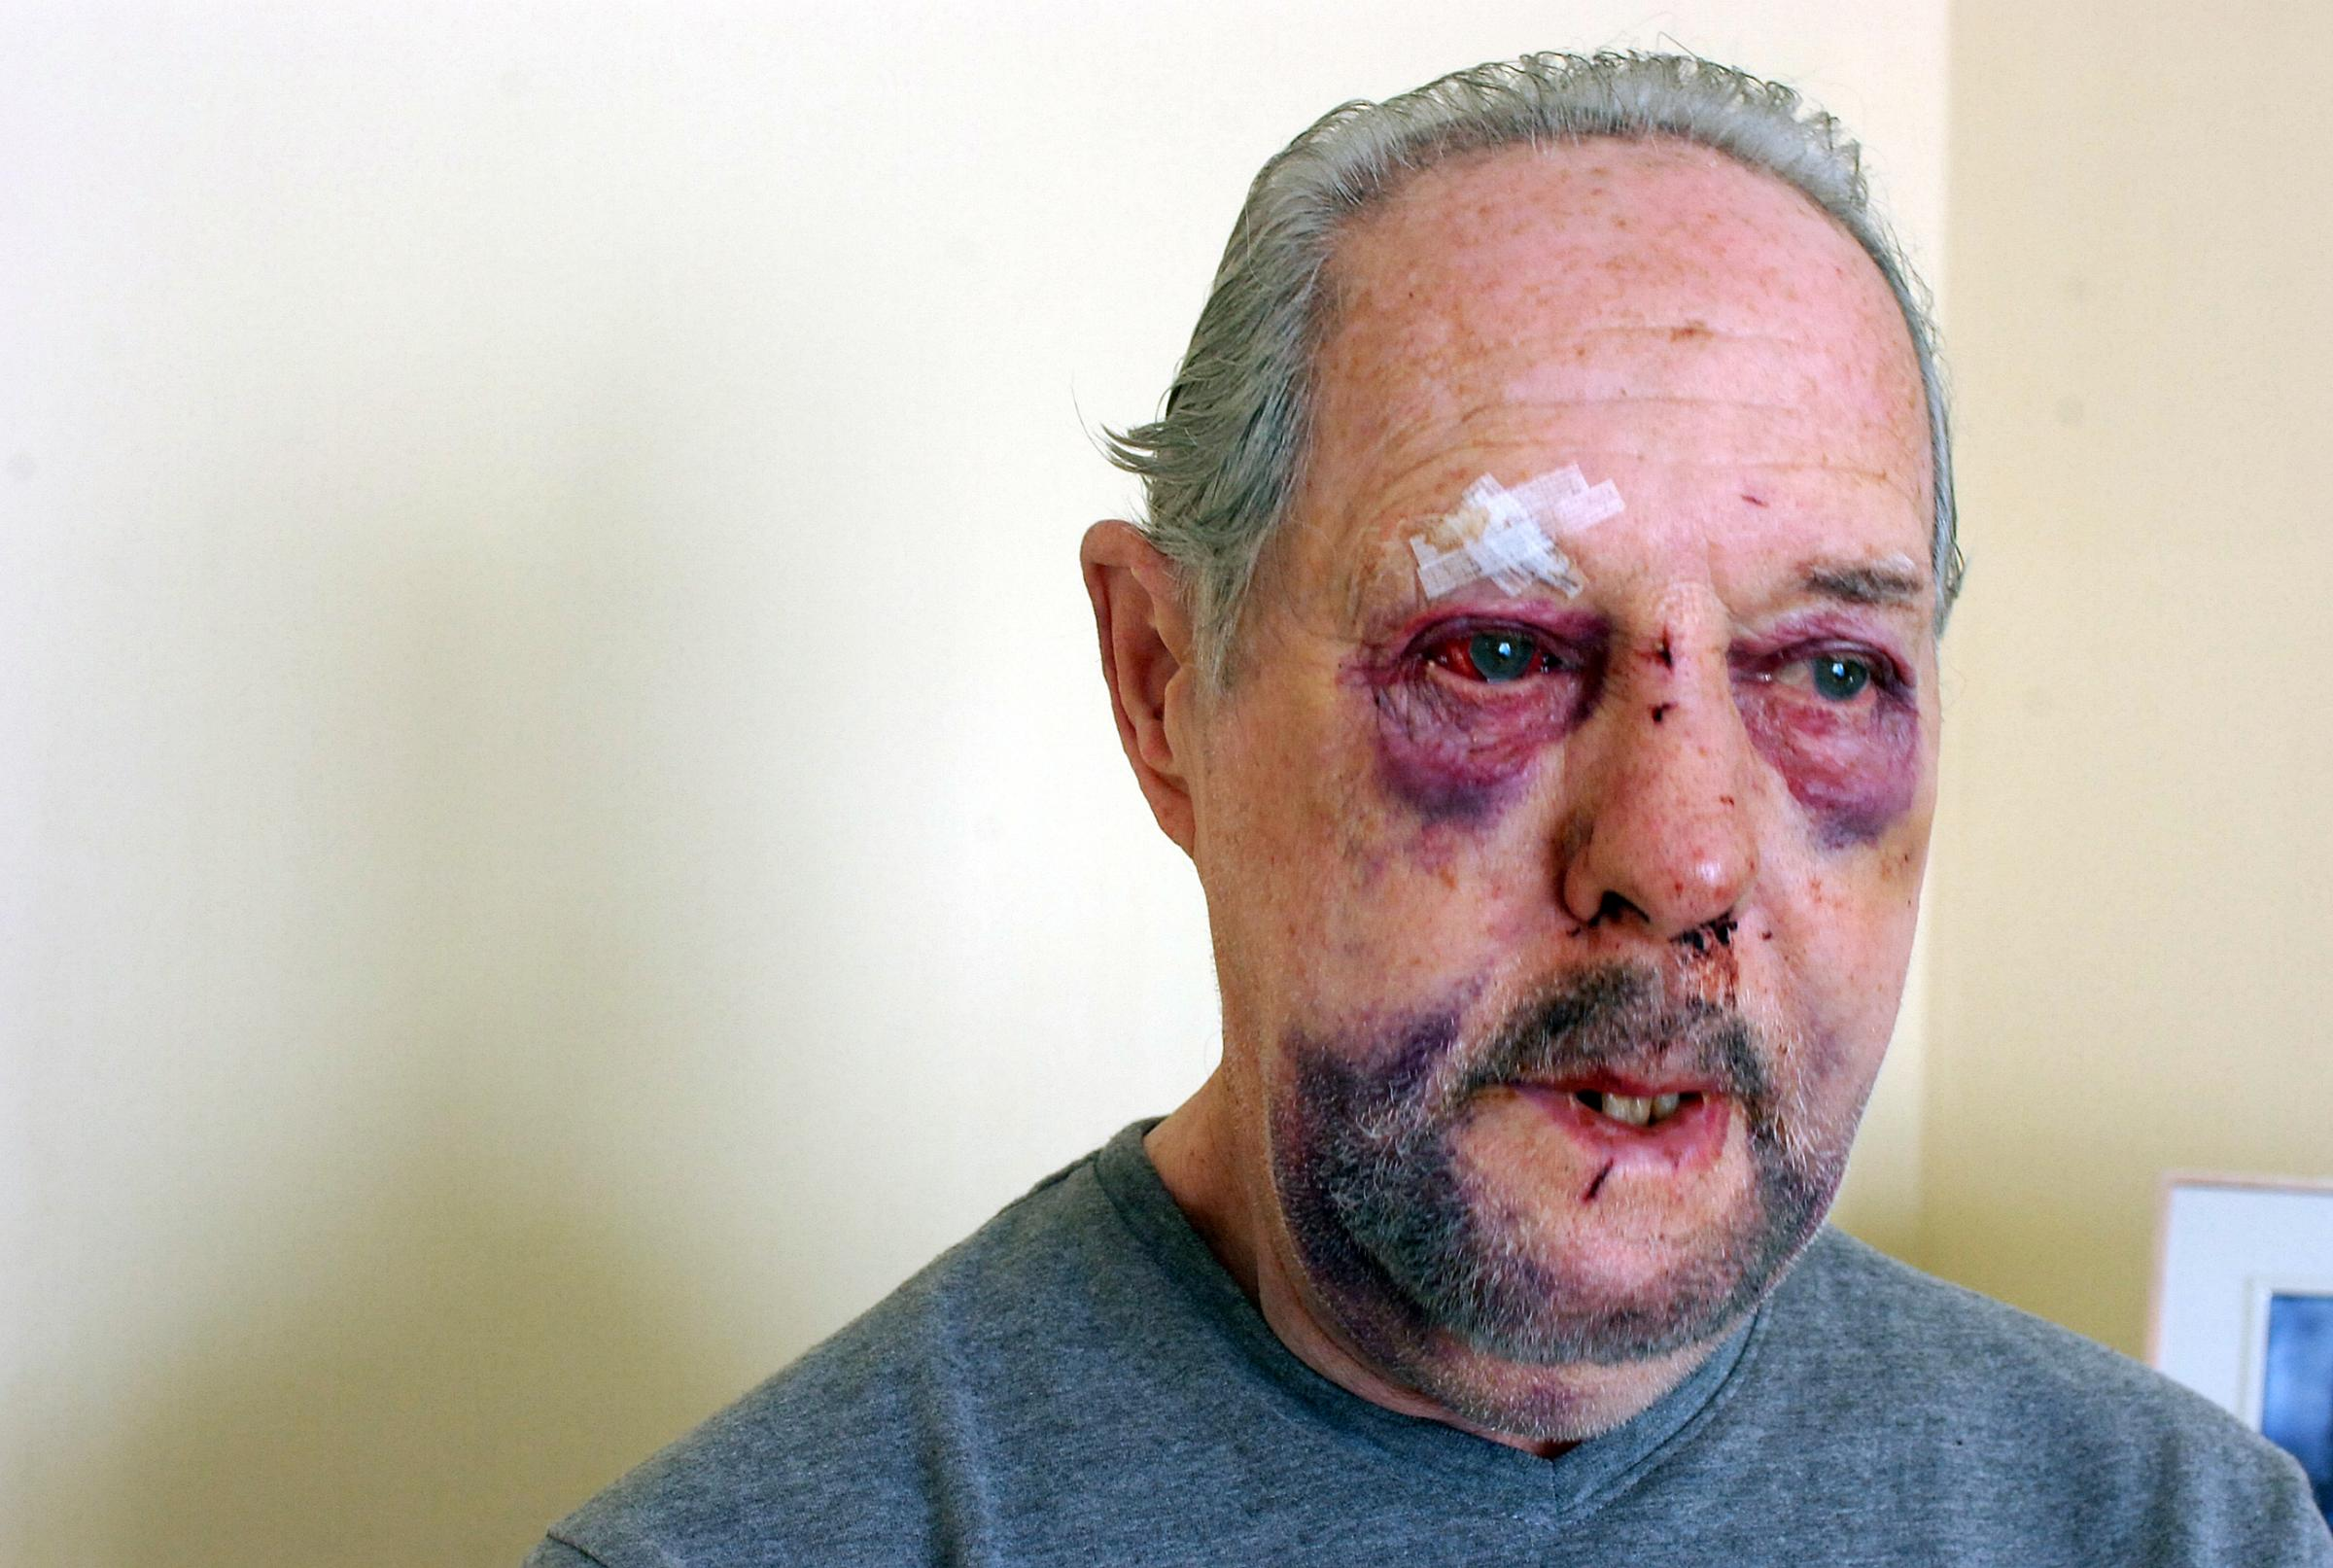 Thugs did this to cabbie Ken, 77, for £11